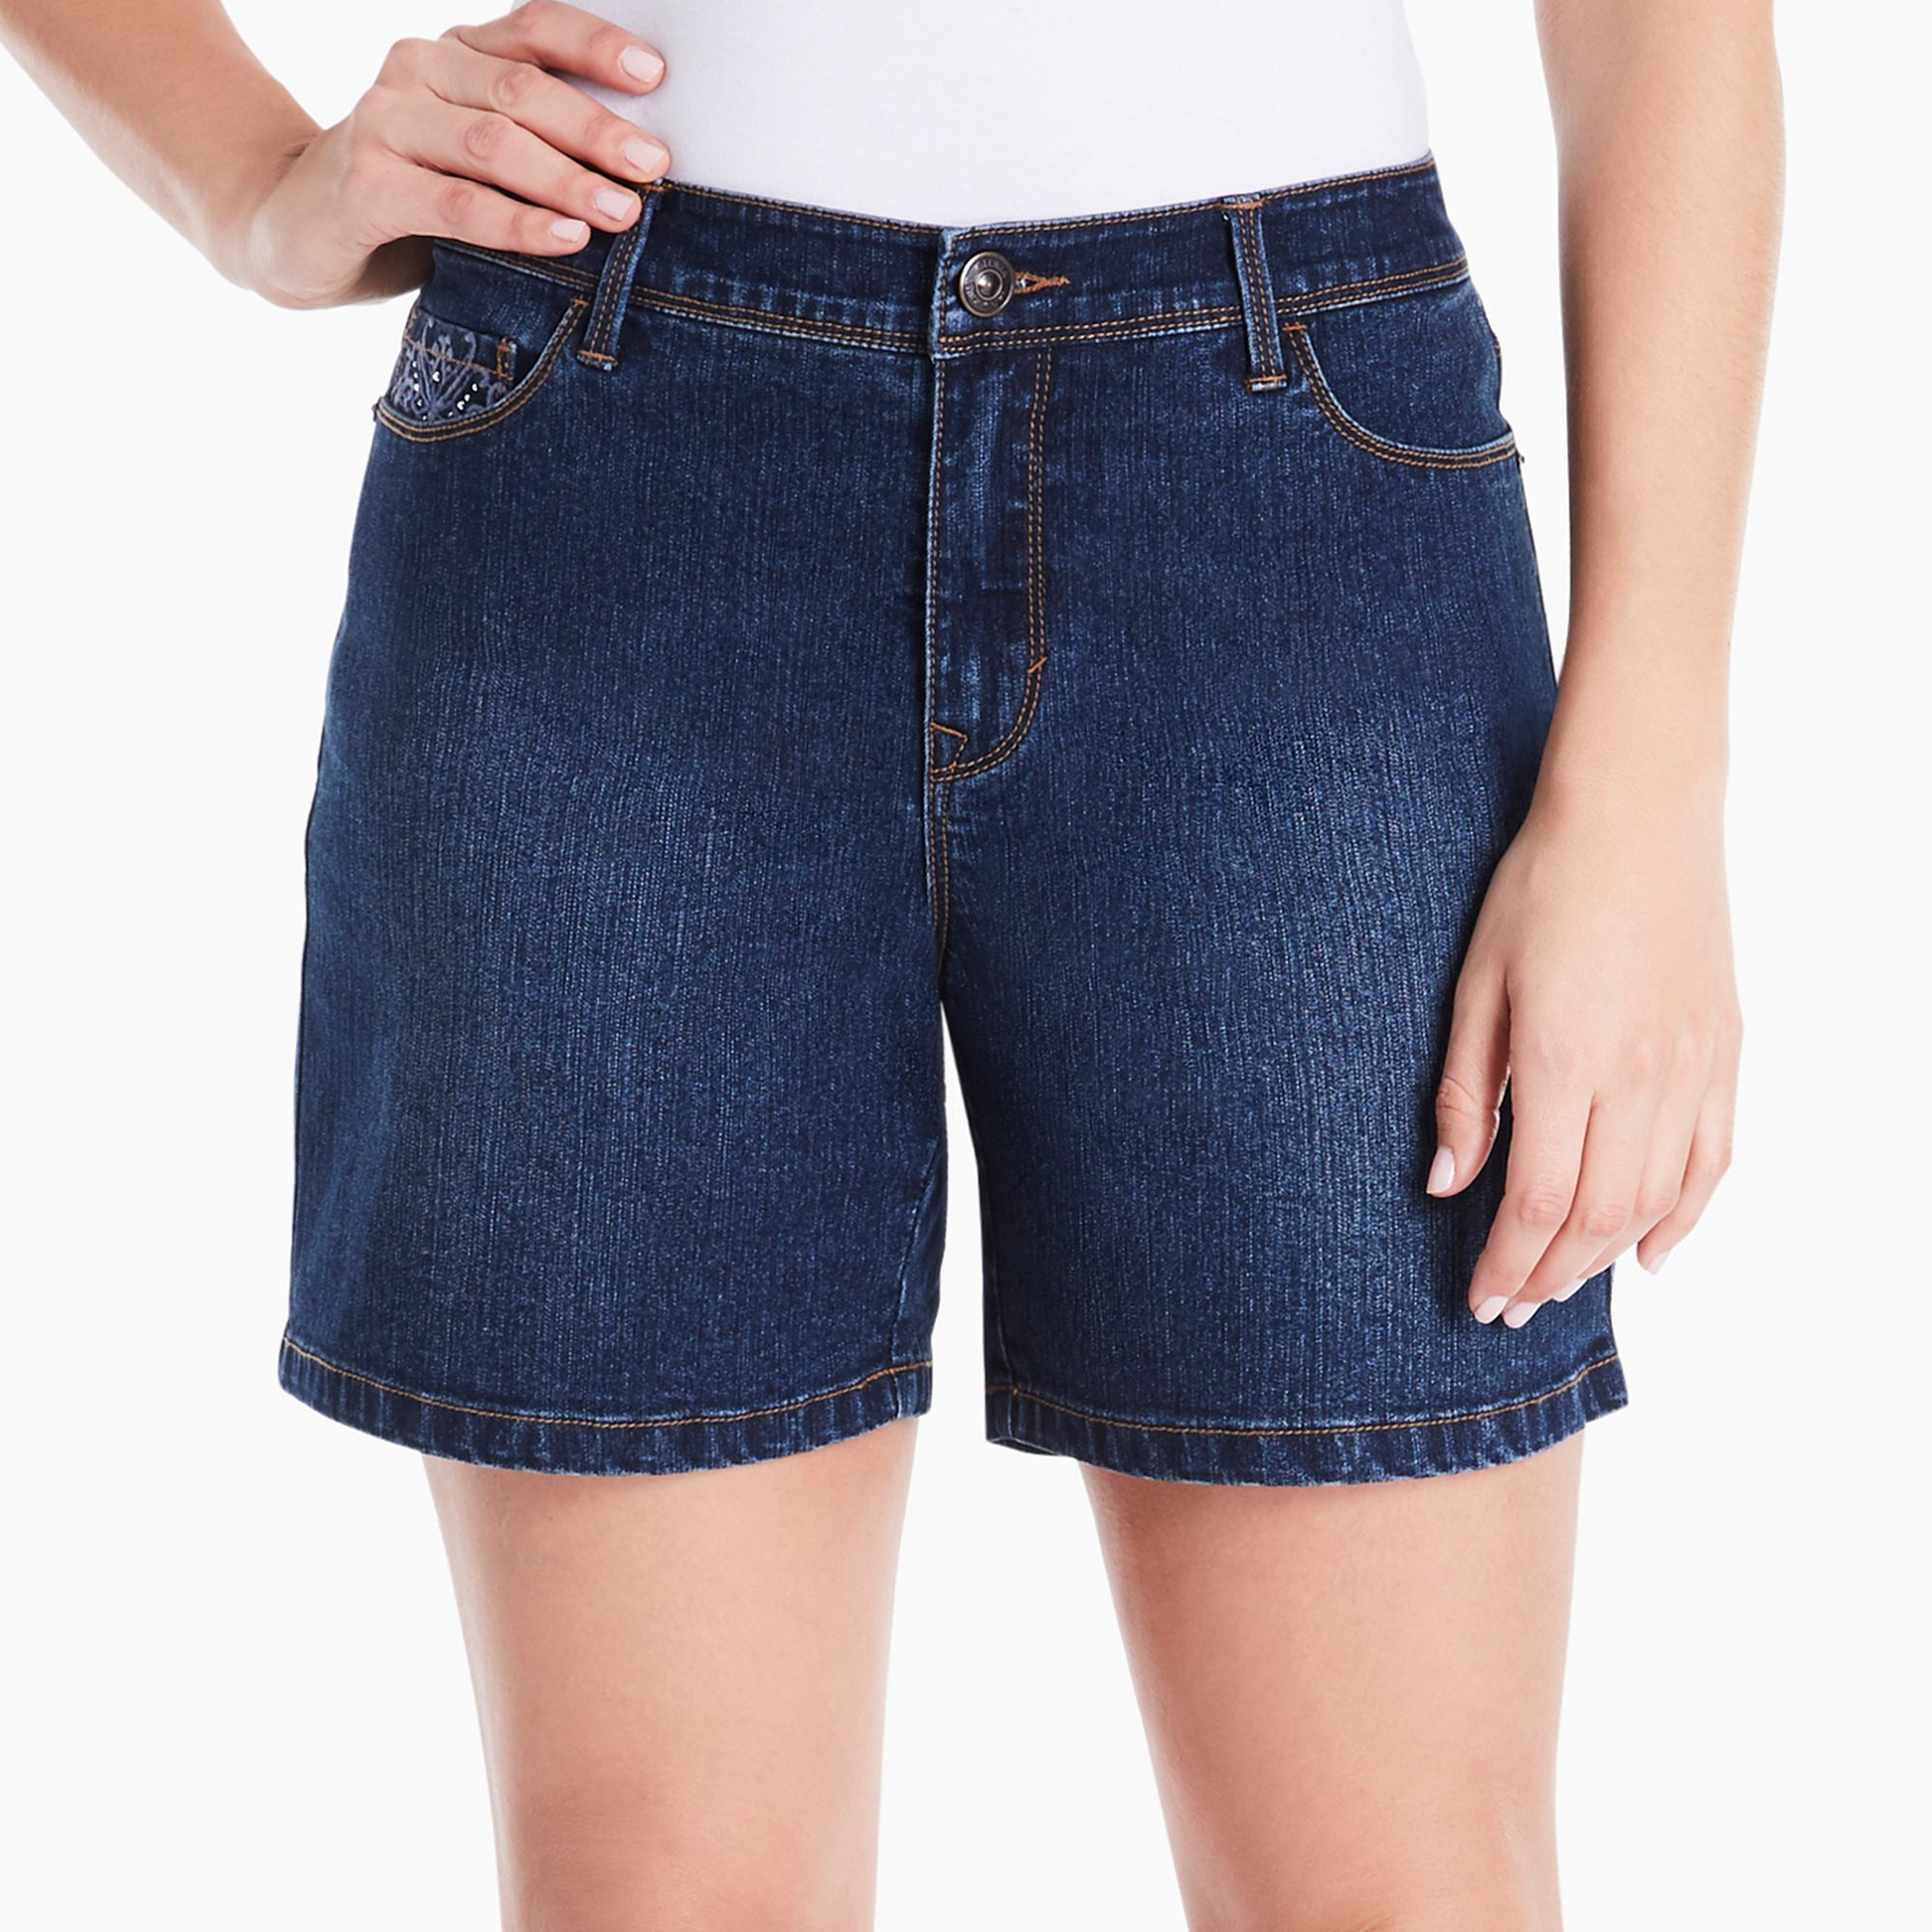 9dff4444ca Women's Gloria Vanderbilt Majesty Embroidered Jean Shorts, Size: 12, Med  Blue